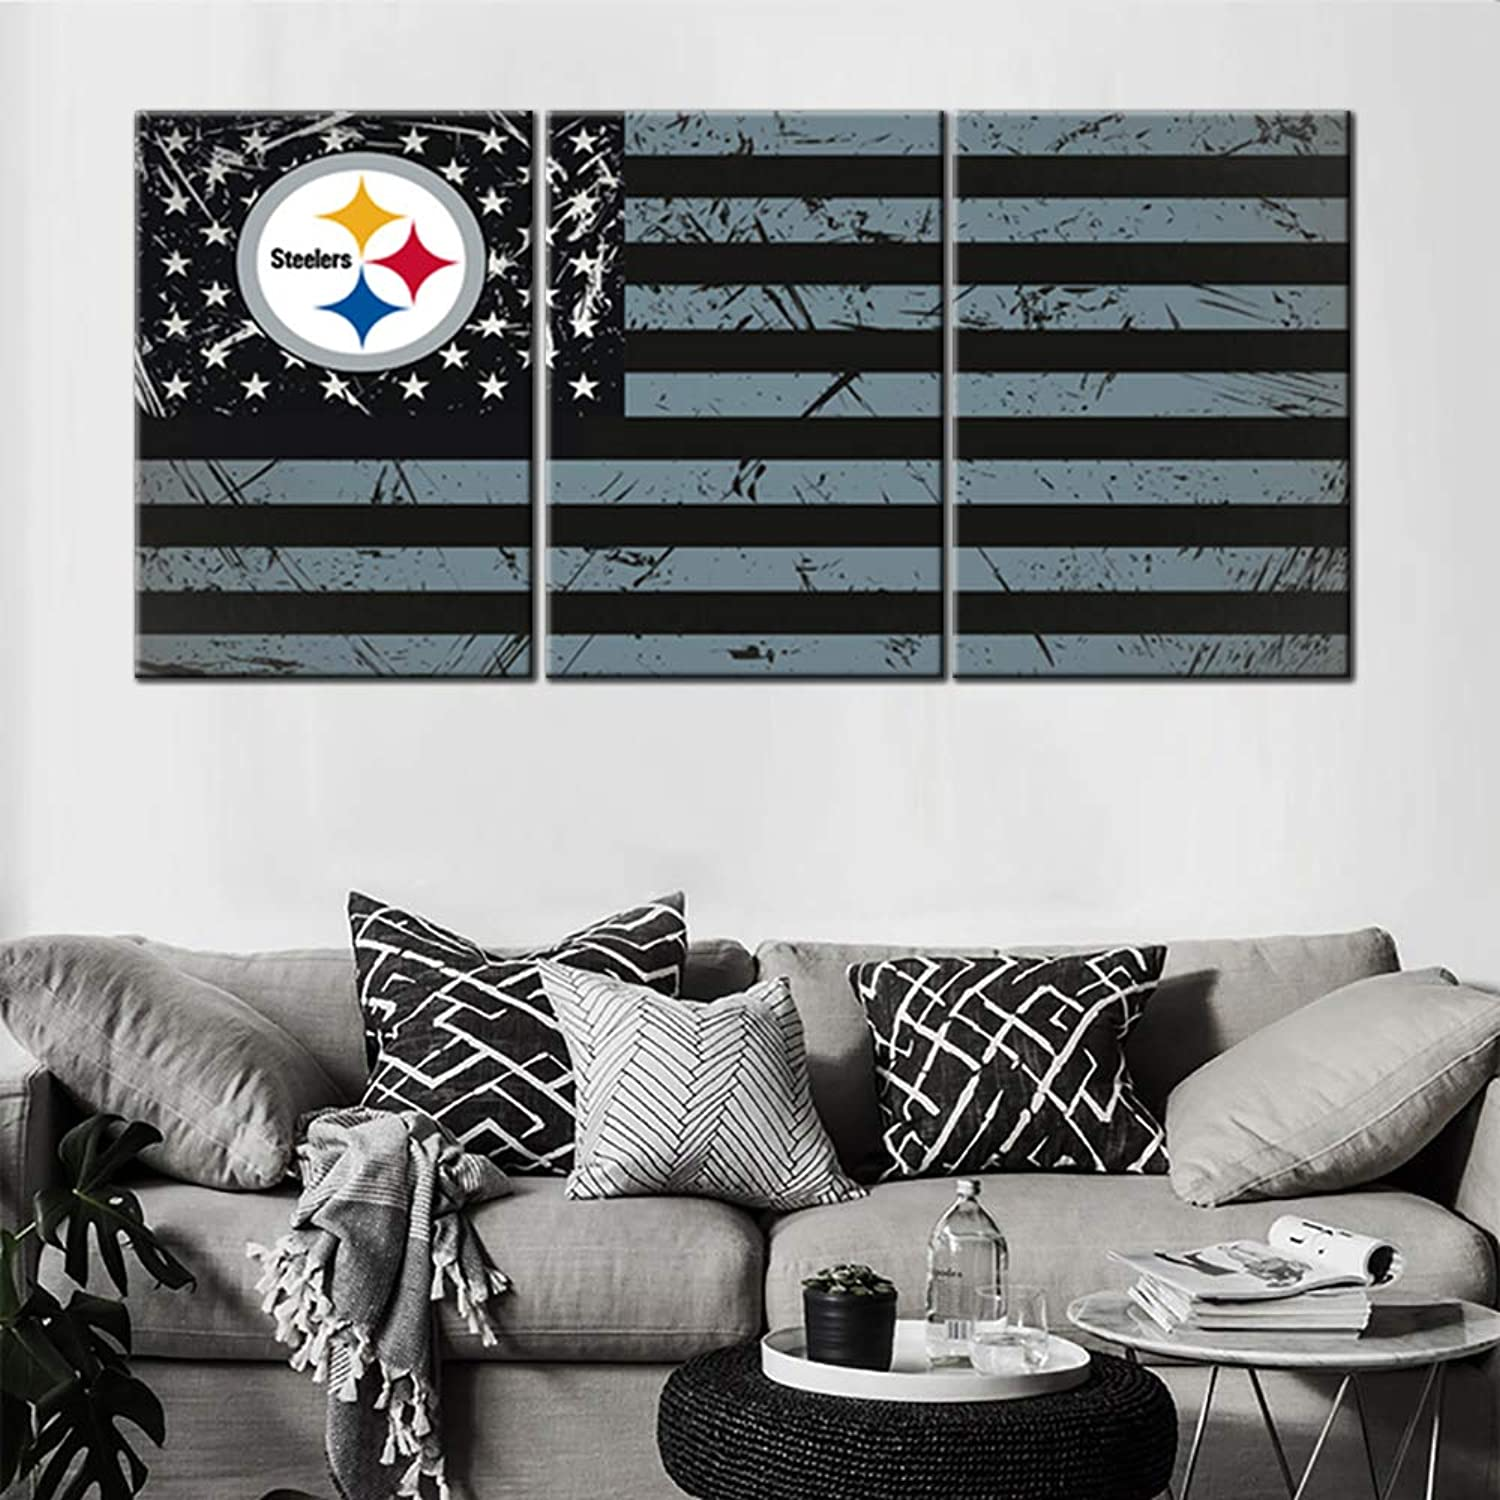 Living Room Modern Pictures American Steelers Flag Painting Red Black Stripes Wall Art 3 Piece Premium Quality Artwork on Canvas Home Decor Framed Ready to Hang Posters and Prints(60''Wx28''H)